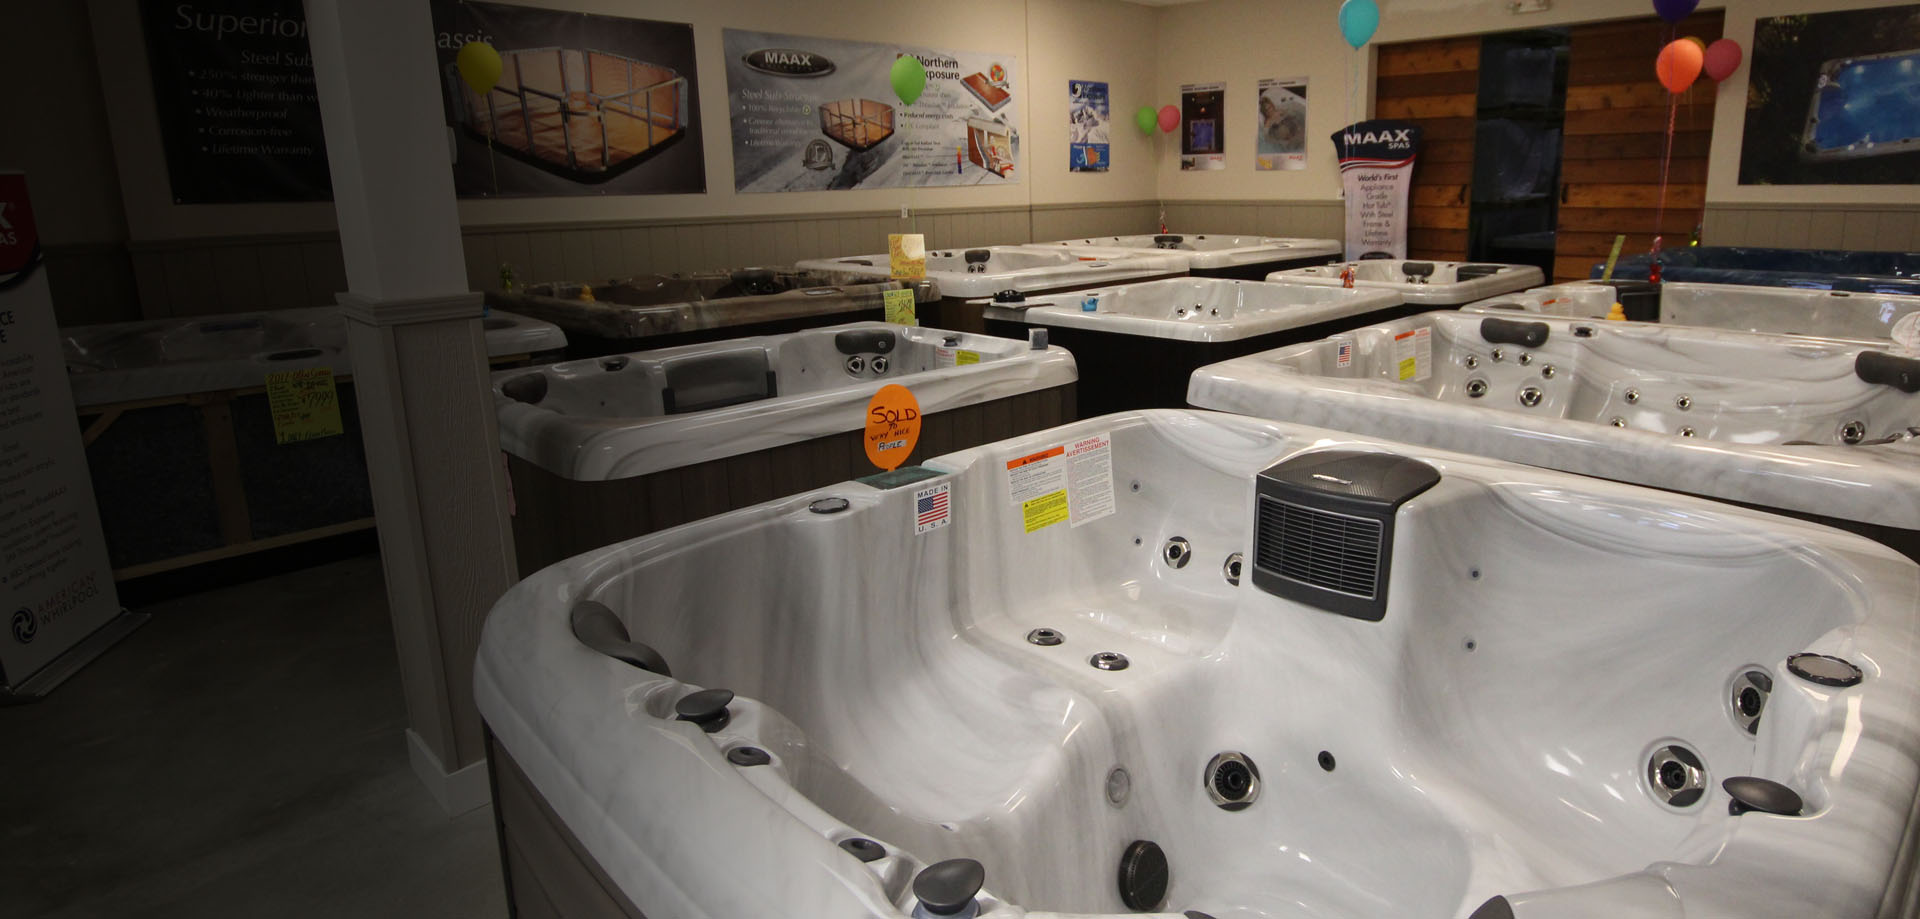 Hot Tubs at West Coast Factory Direct Hot Tub